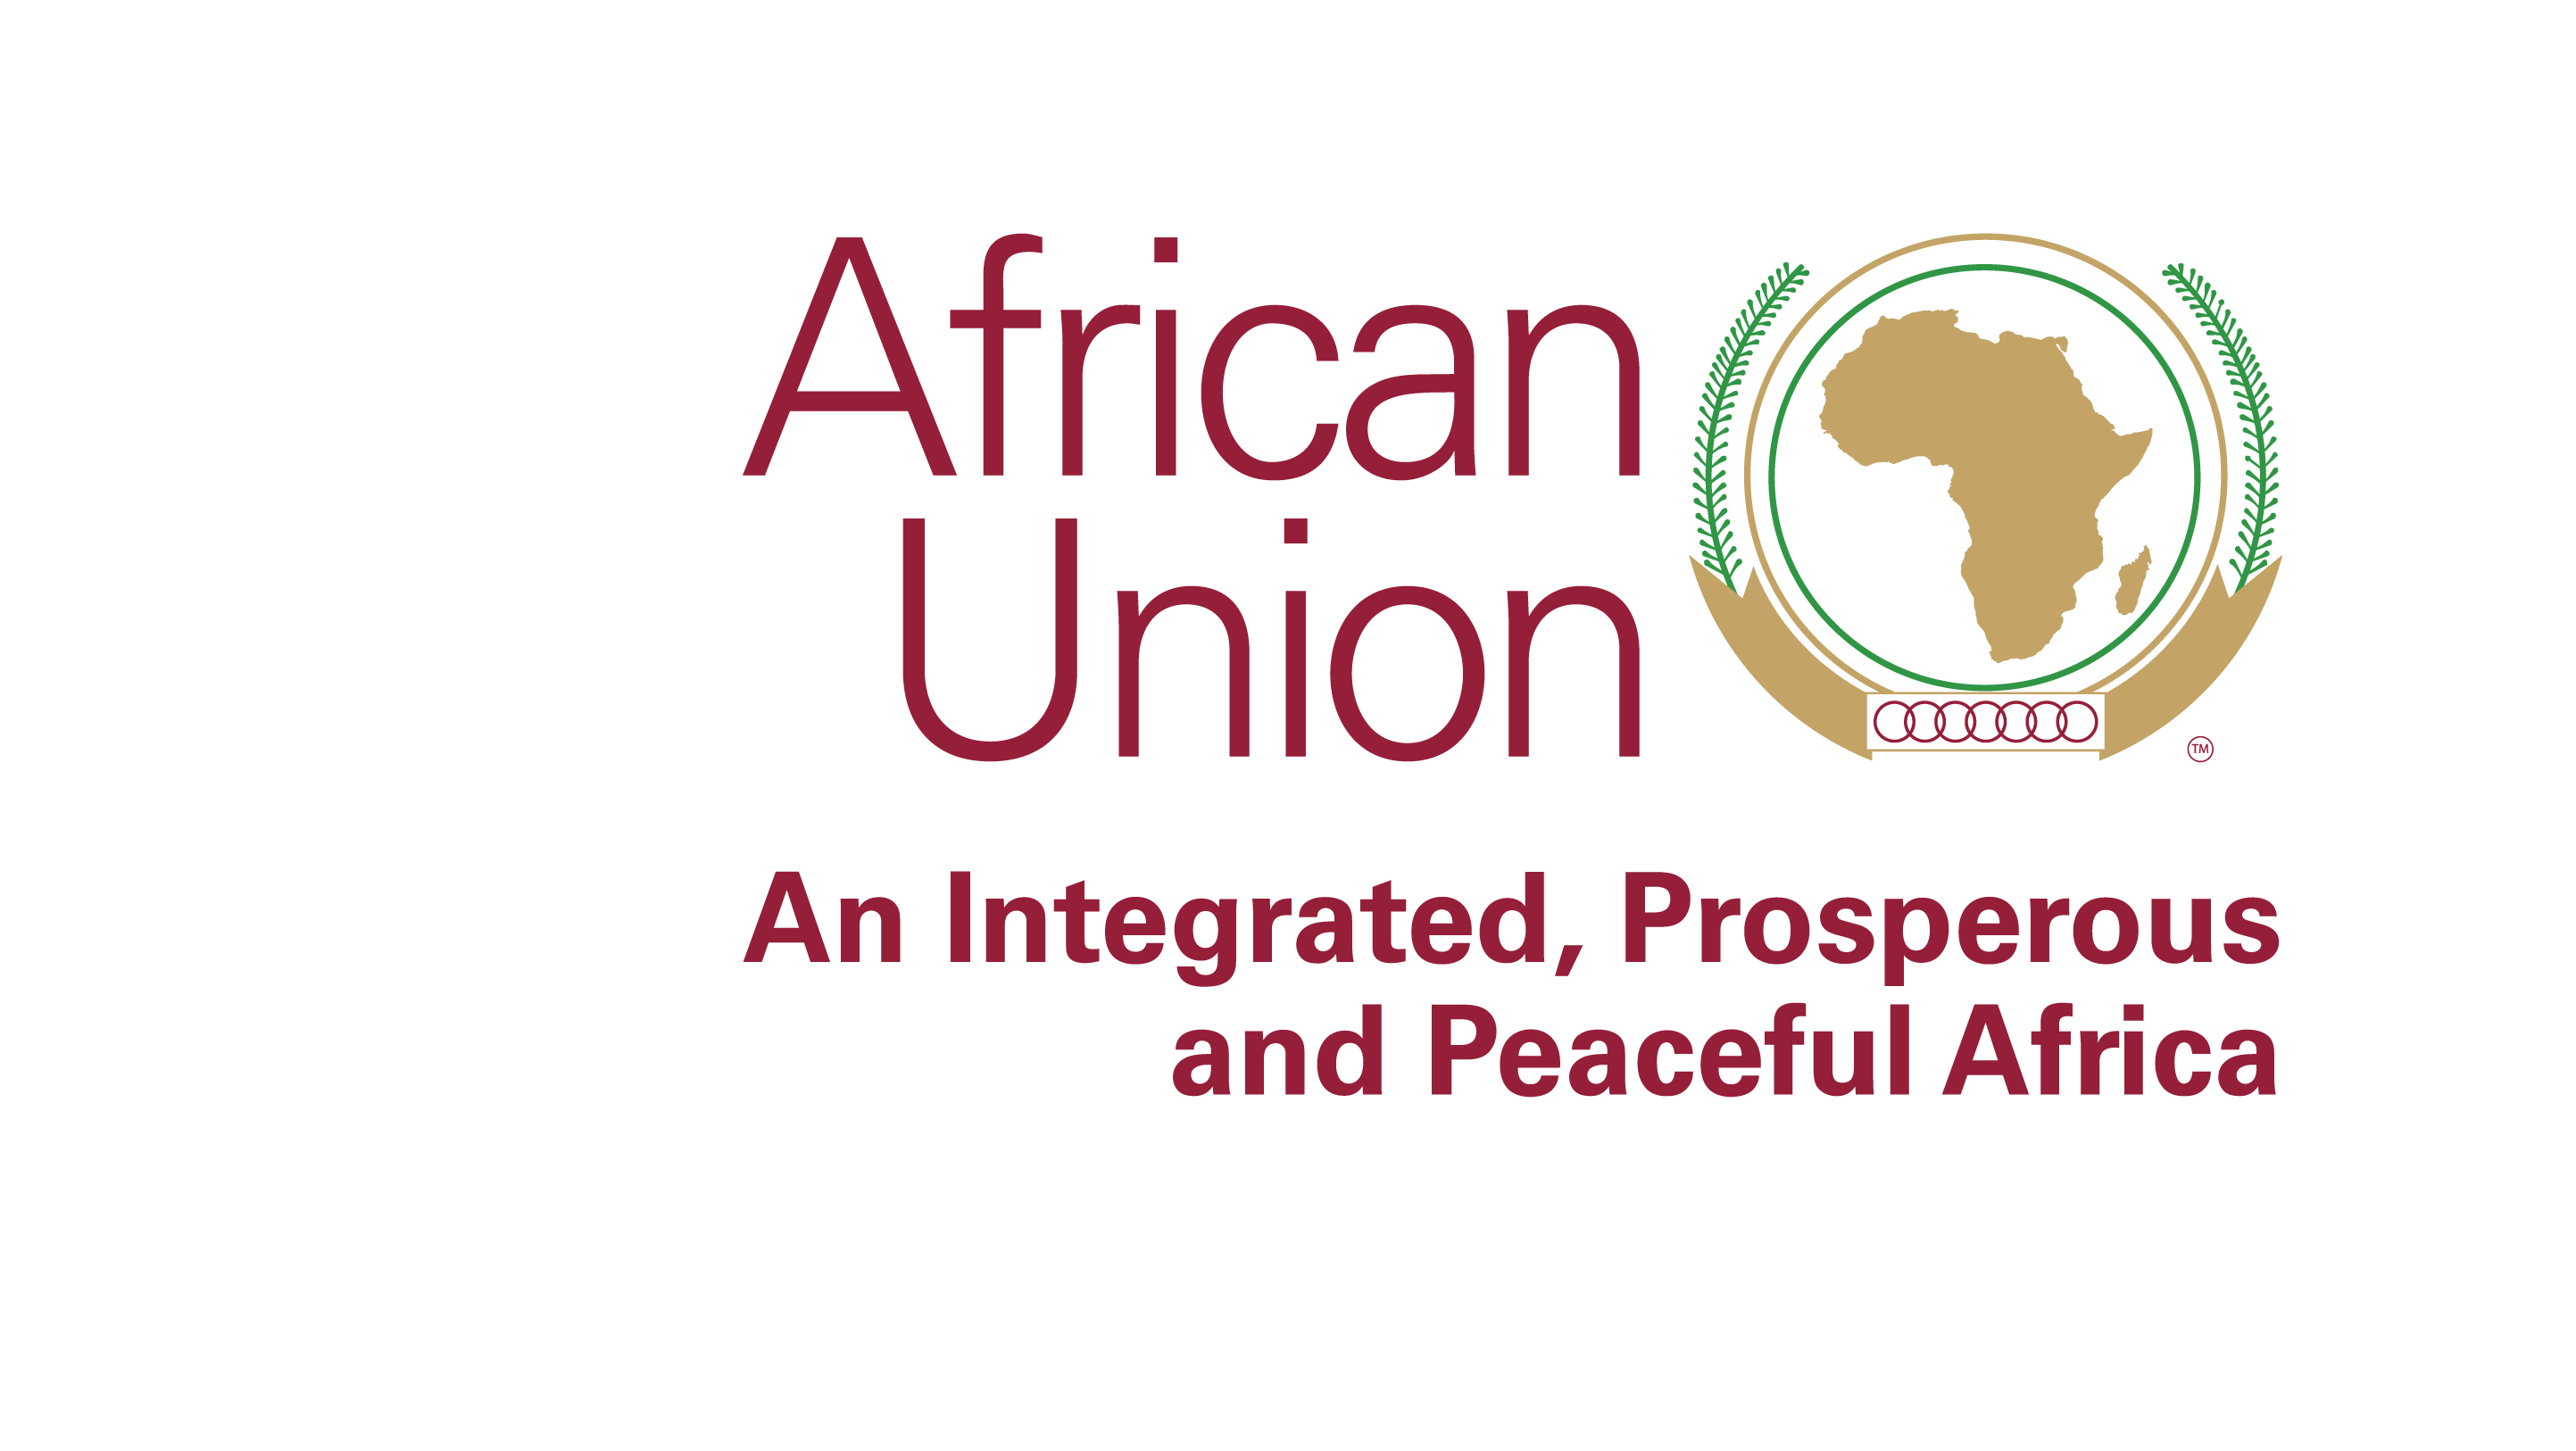 African Union Commission (AUC) Pan-Africa Youth Forum 2019 in Addis Ababa, Ethiopia